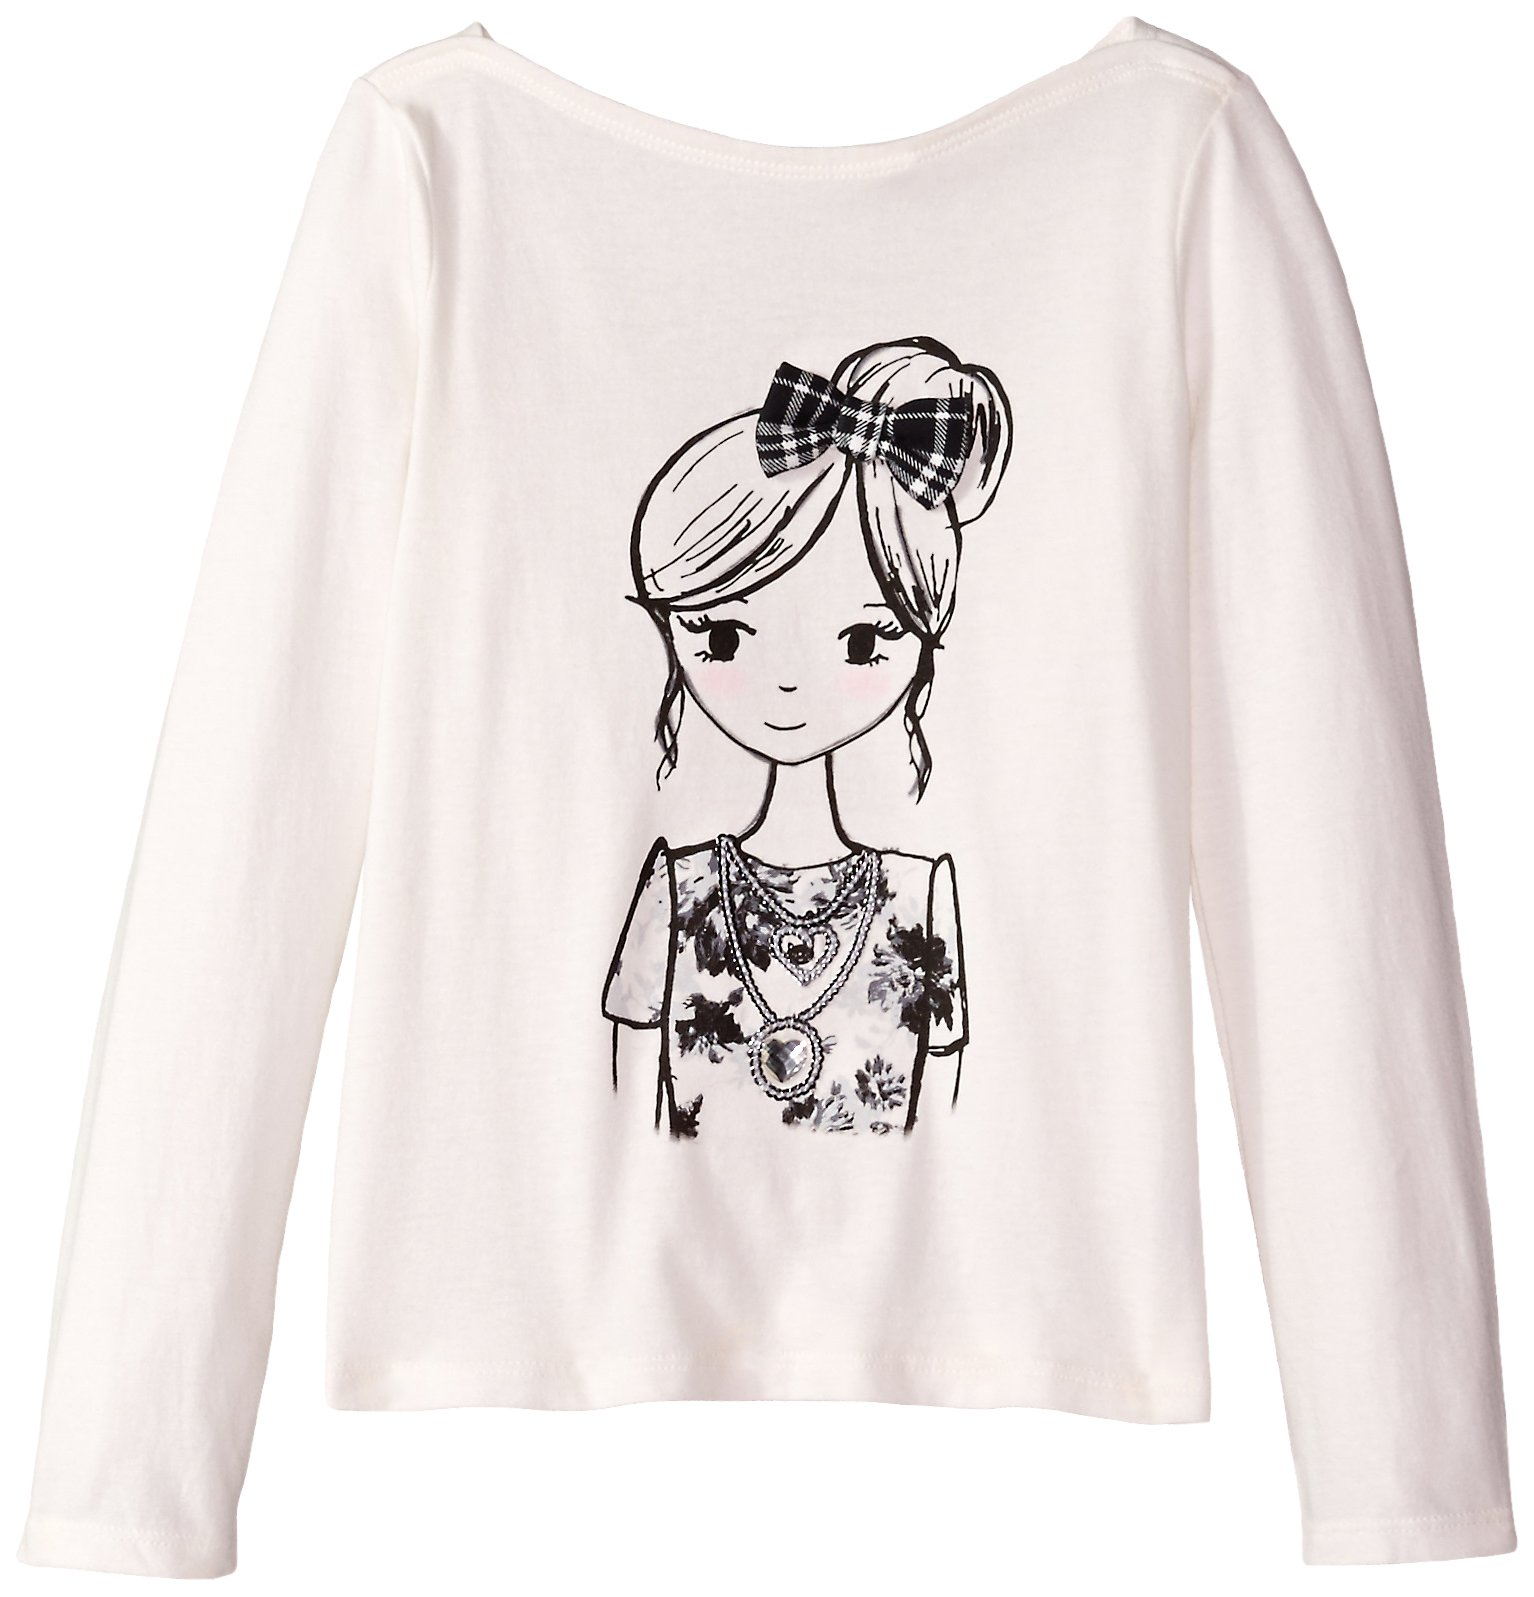 The Children's Place Girls' Long Sleeve T-Shirt